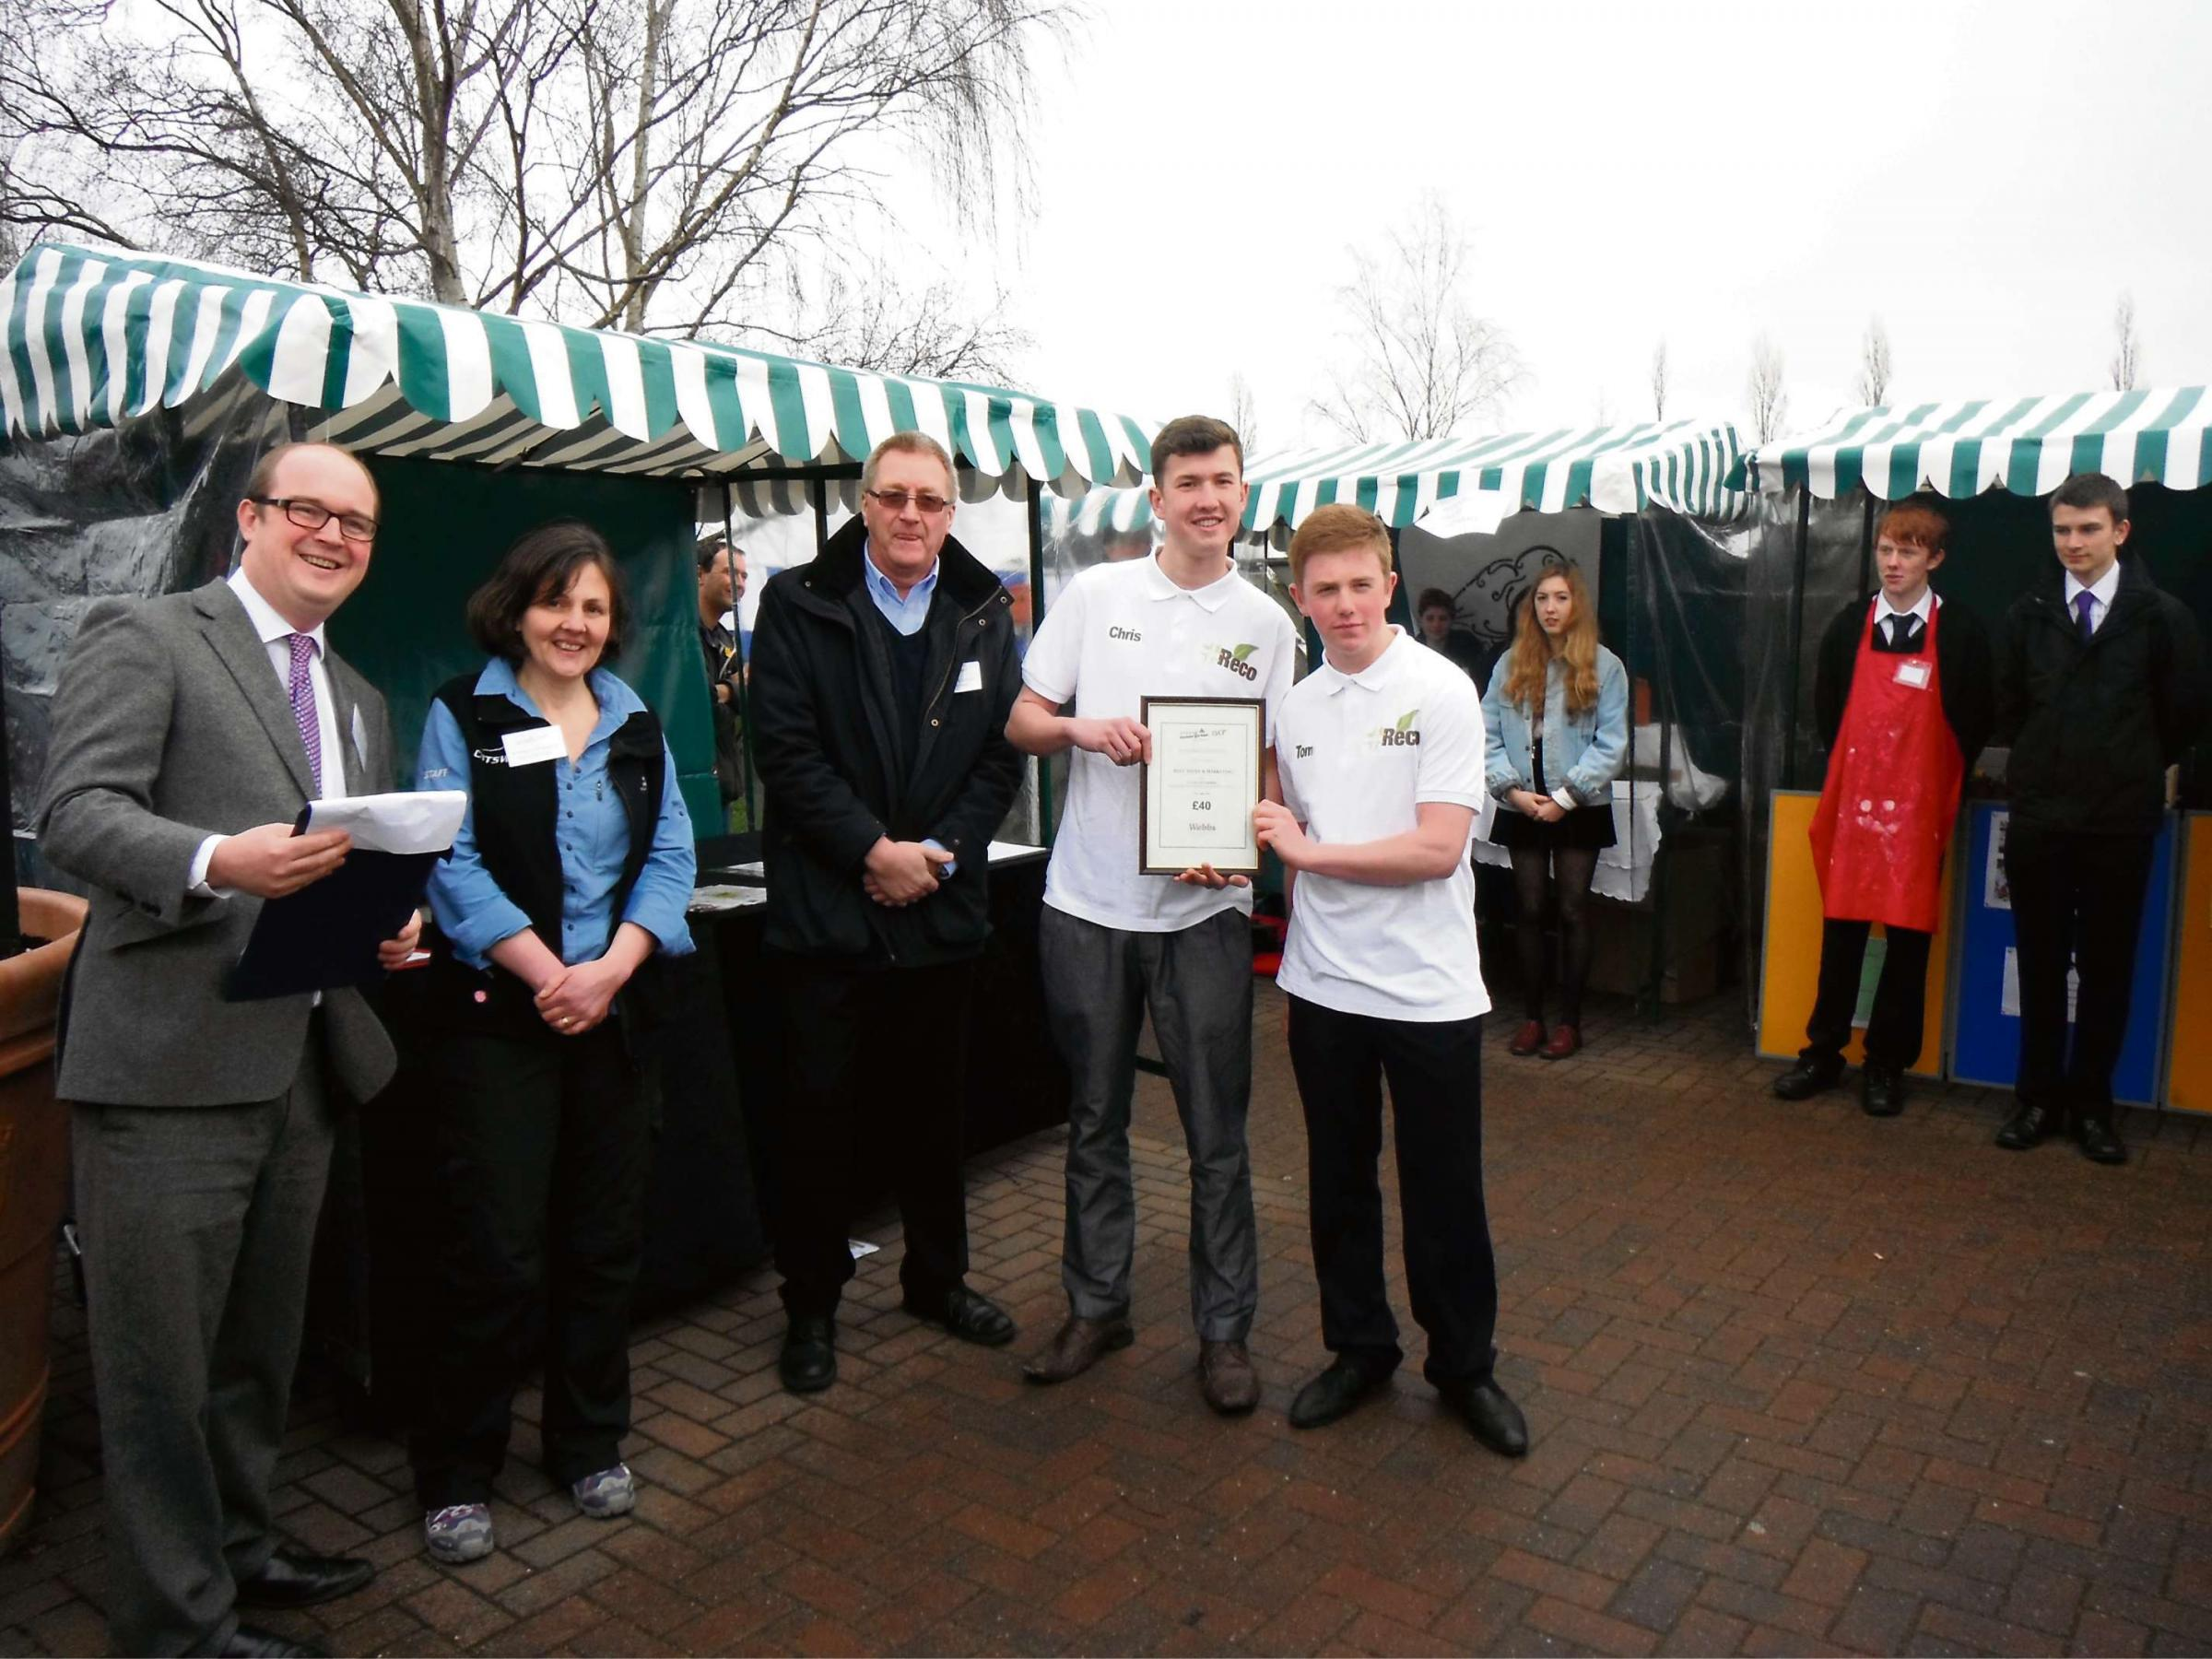 North Bromsgrove students Chris Bishton and Tom Andrews of Hashtag Reco from North Bromsgrove High with their award for sales and marketing at last year's event, with (from left) W